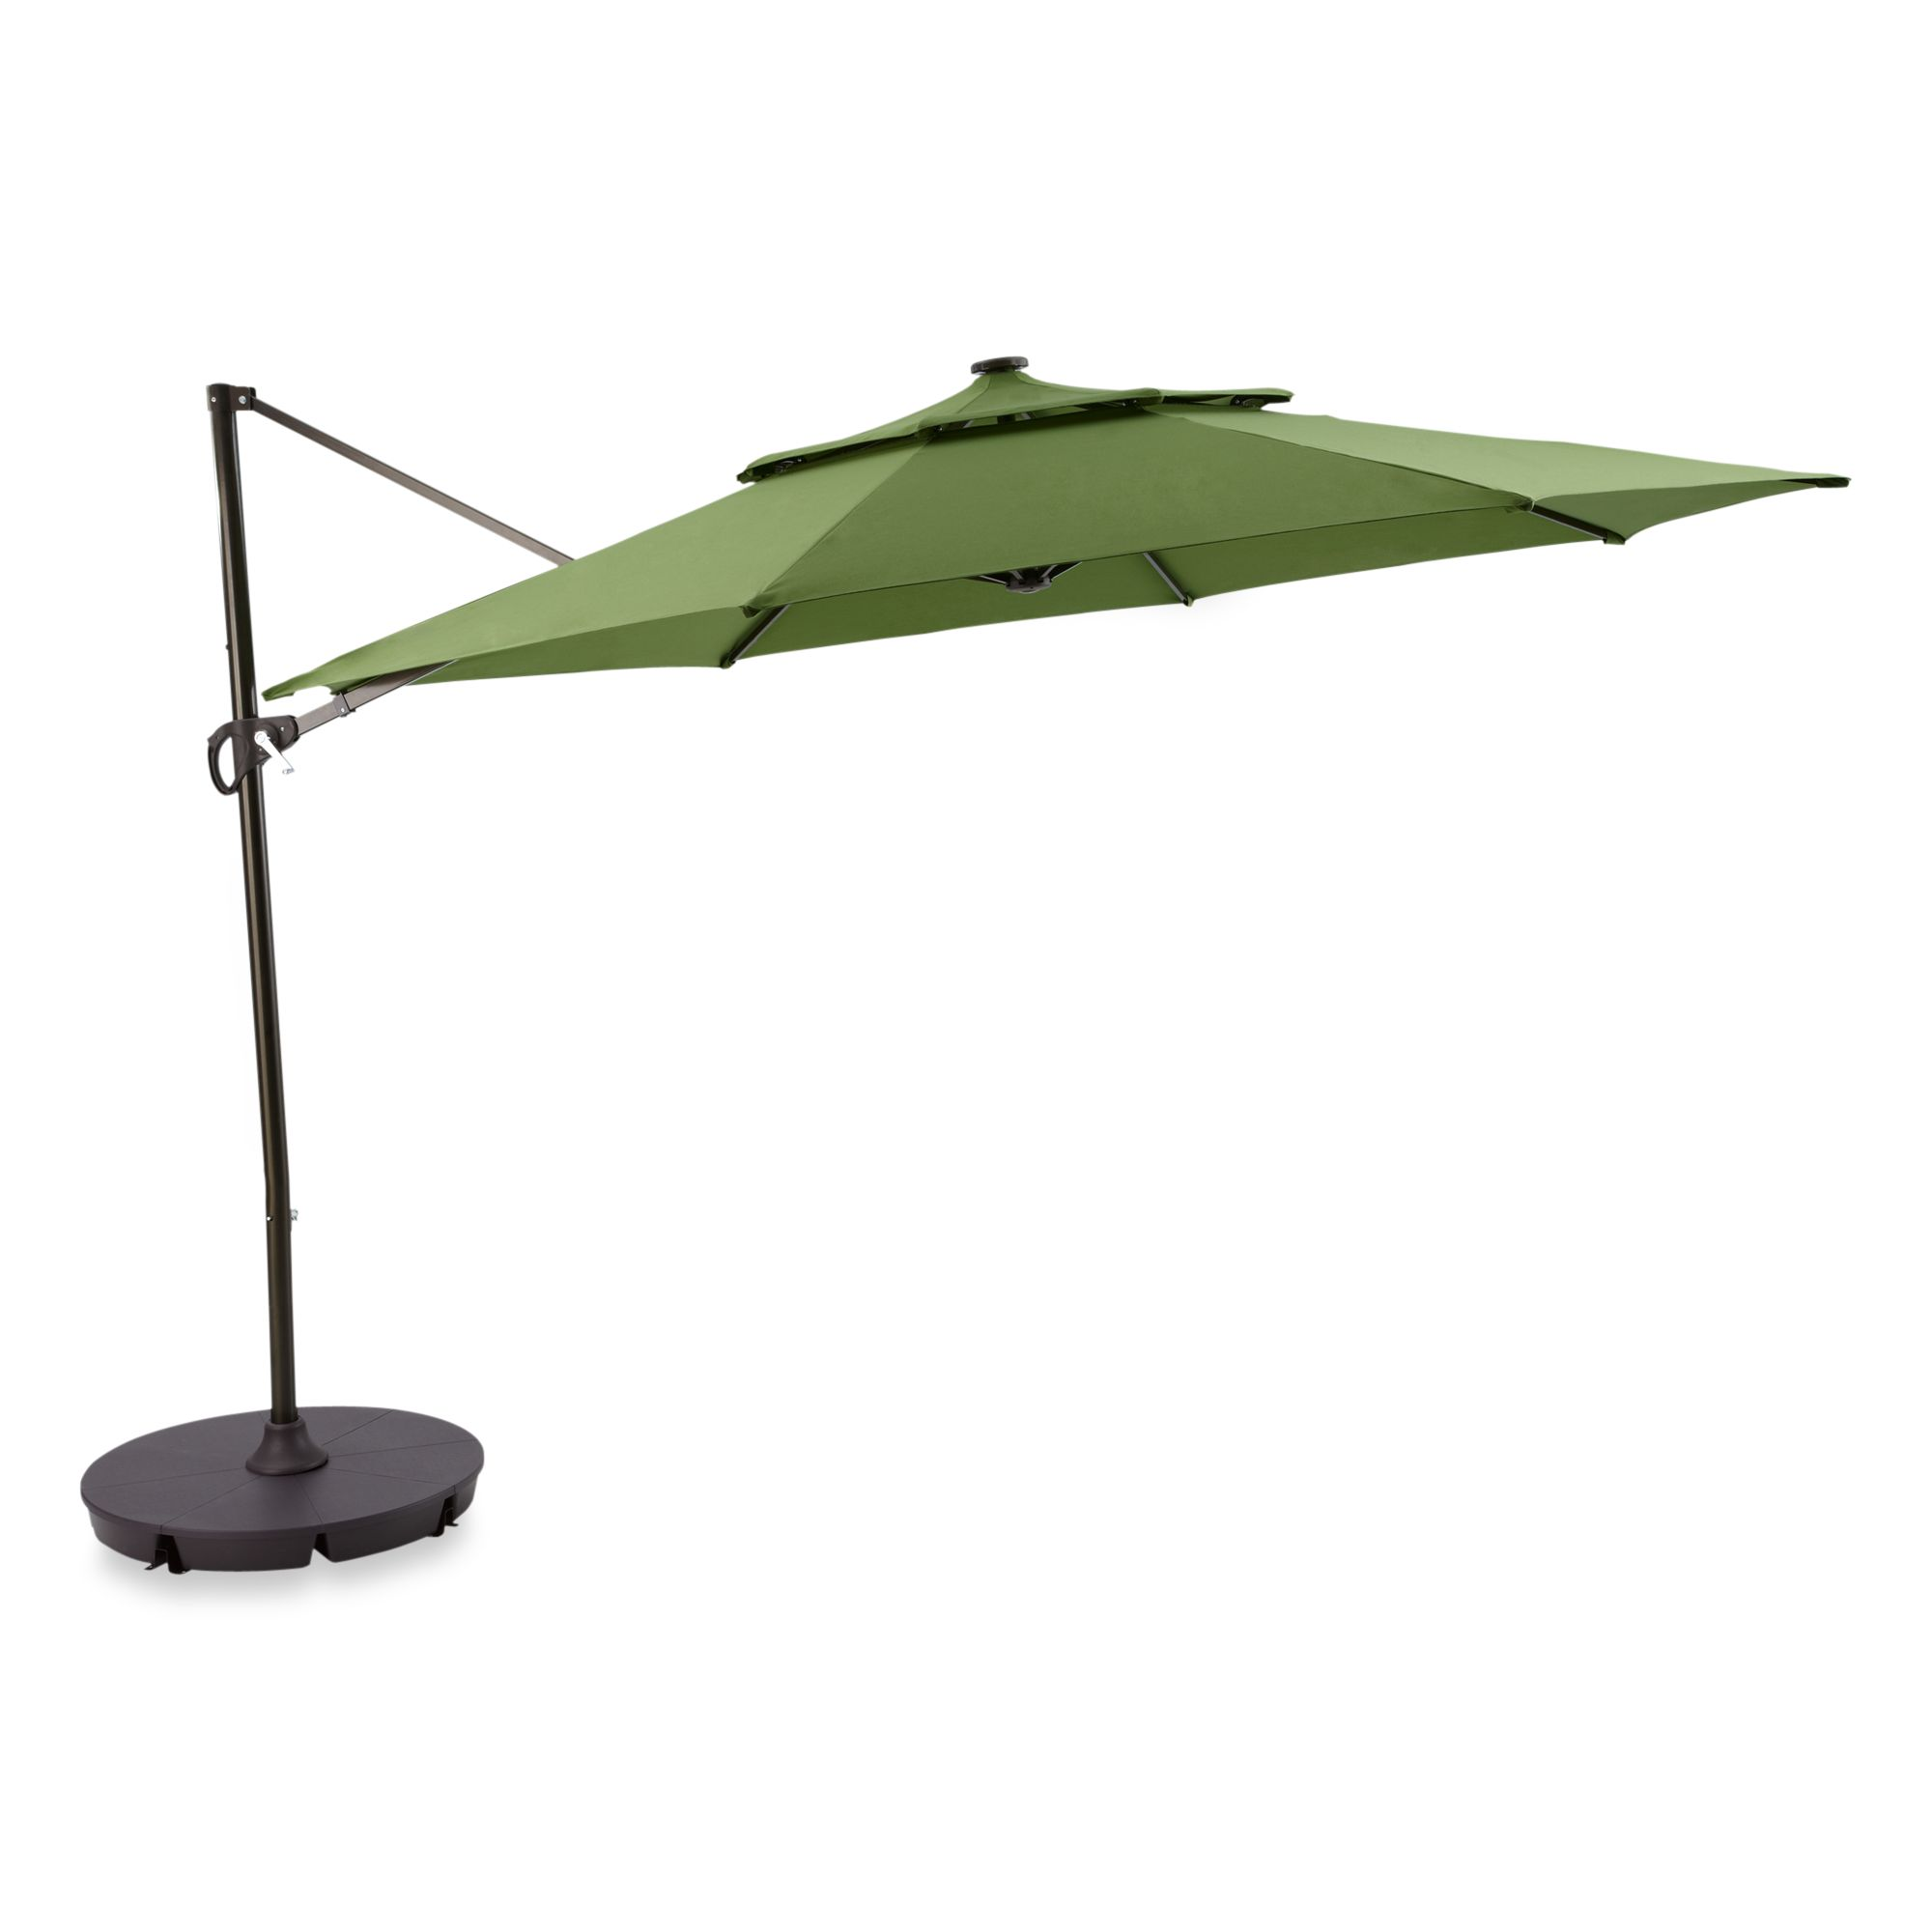 11 Foot Ft Round Umbrella Cantilever Tilting Offset Solar